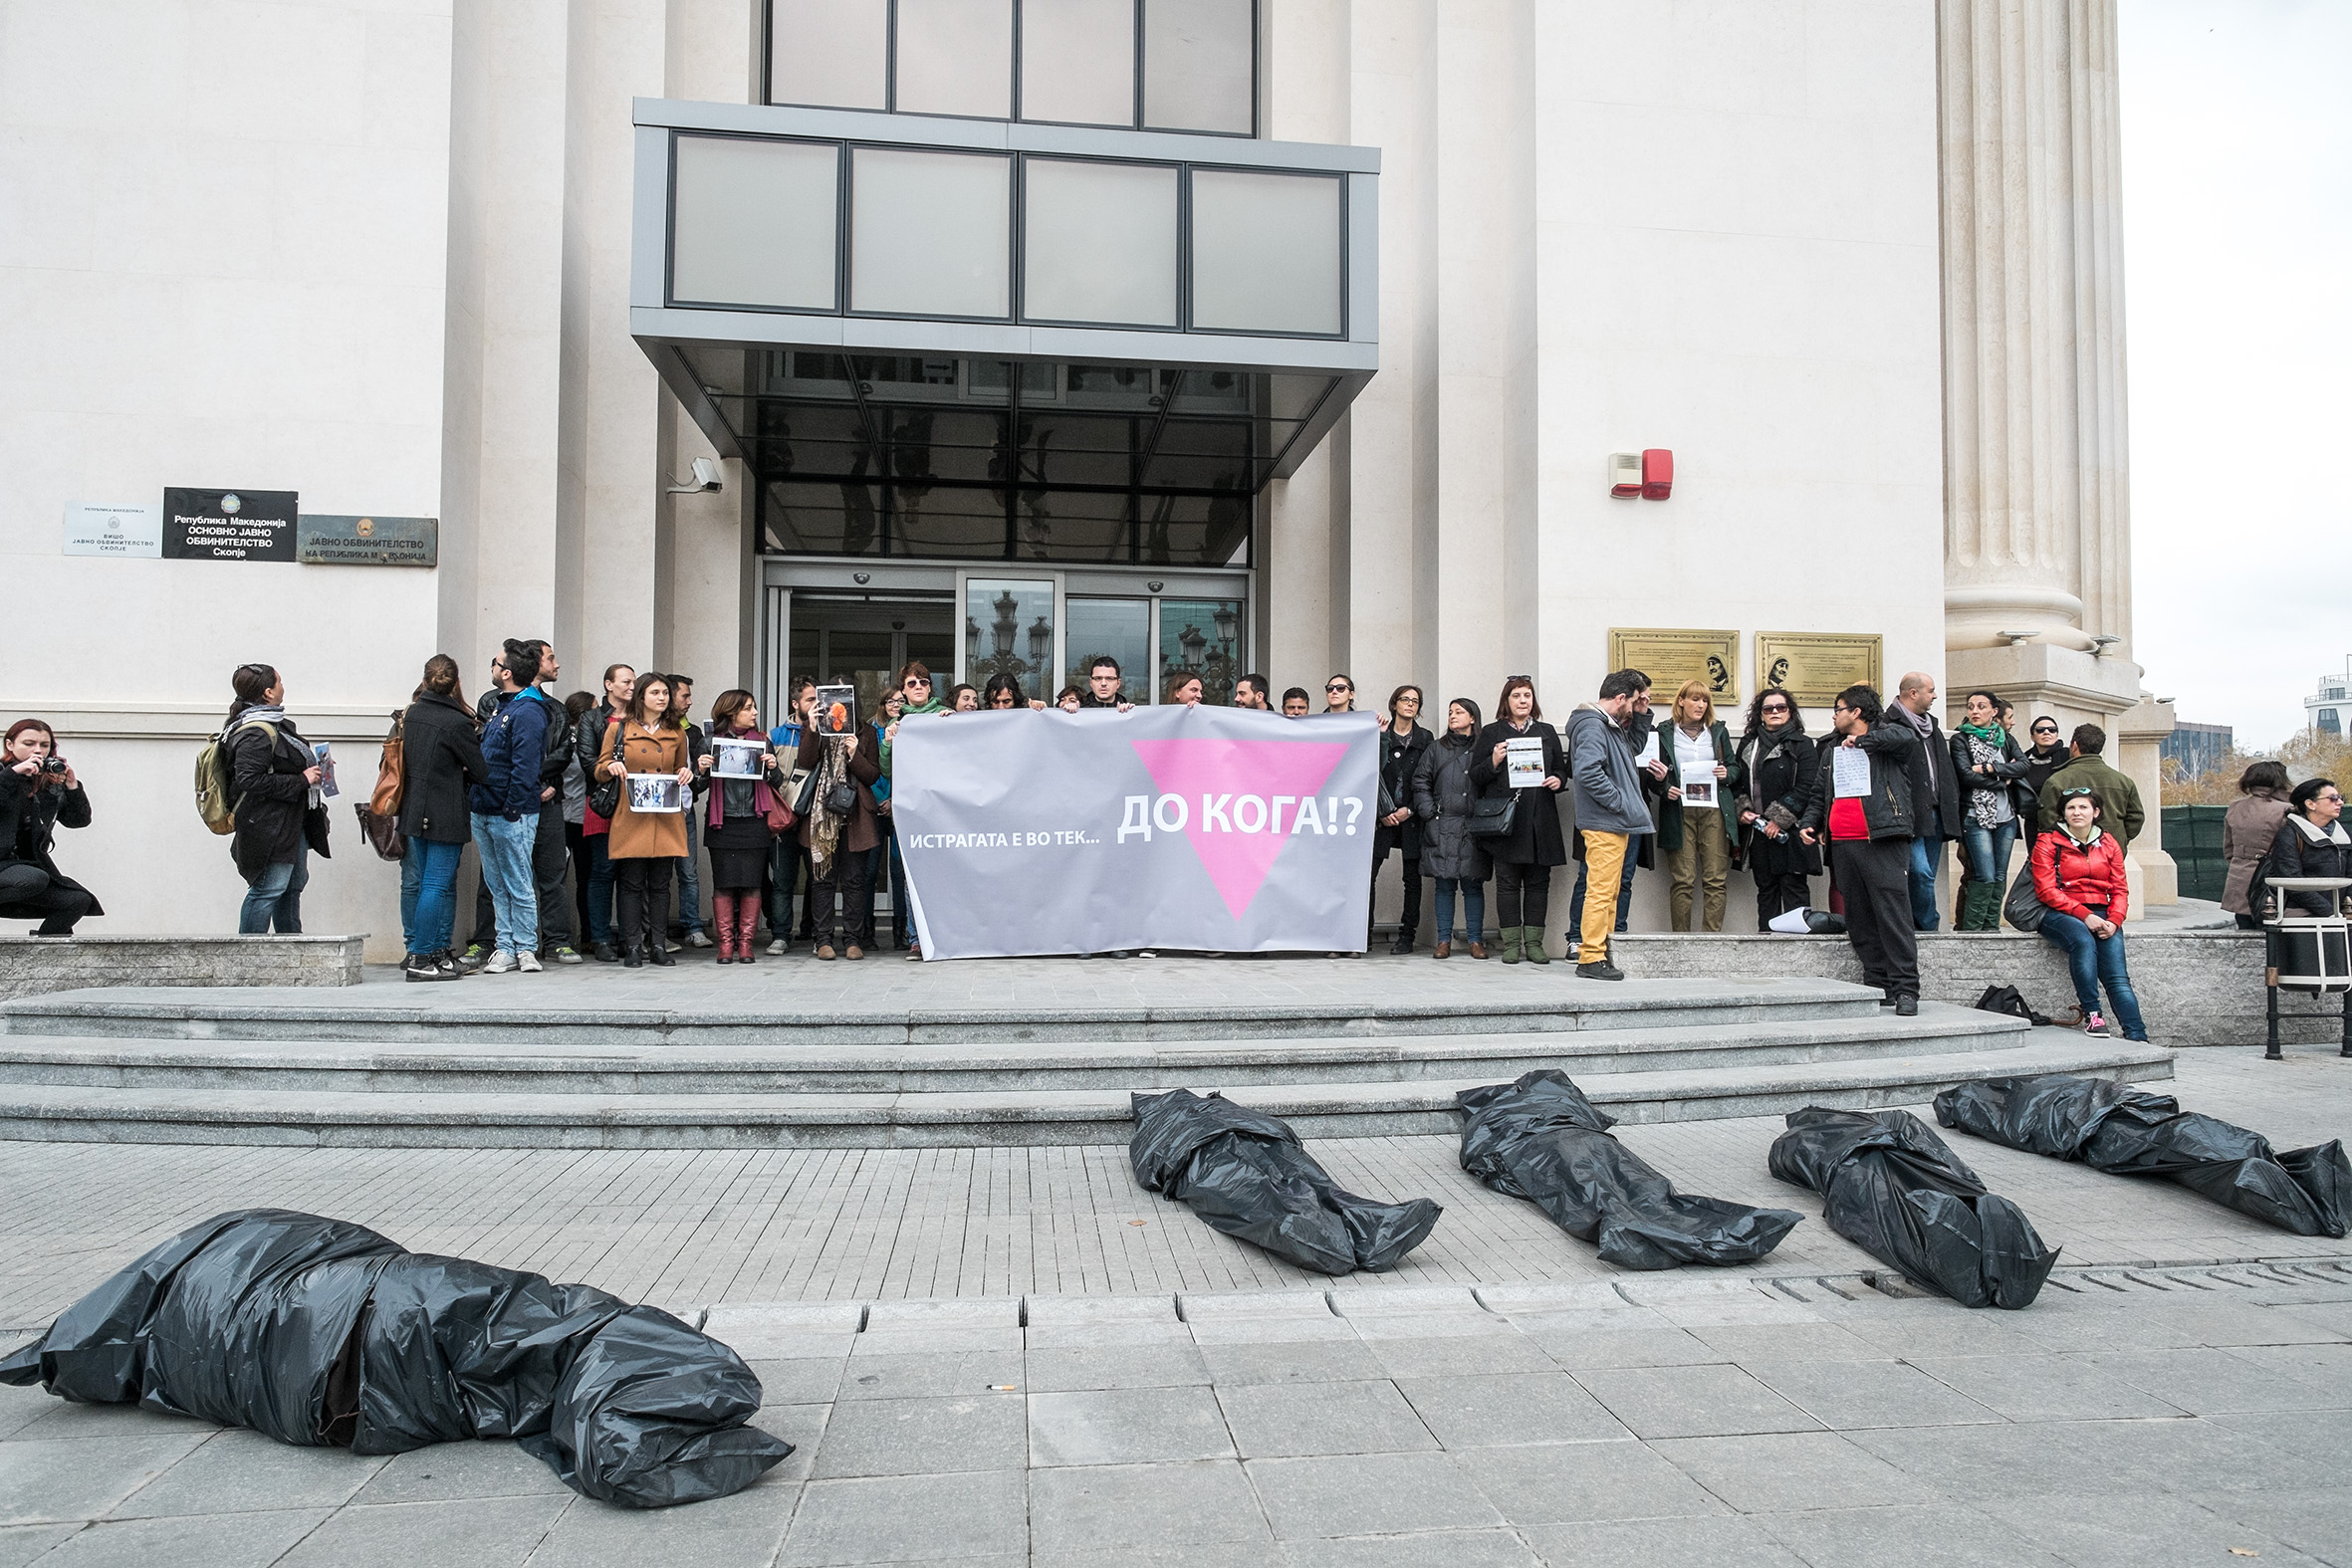 Activists in front of the office of Public Prosecutor in Skopje, Macedonia. Photo by V. Dzambaski, CC BY-NC-SA.